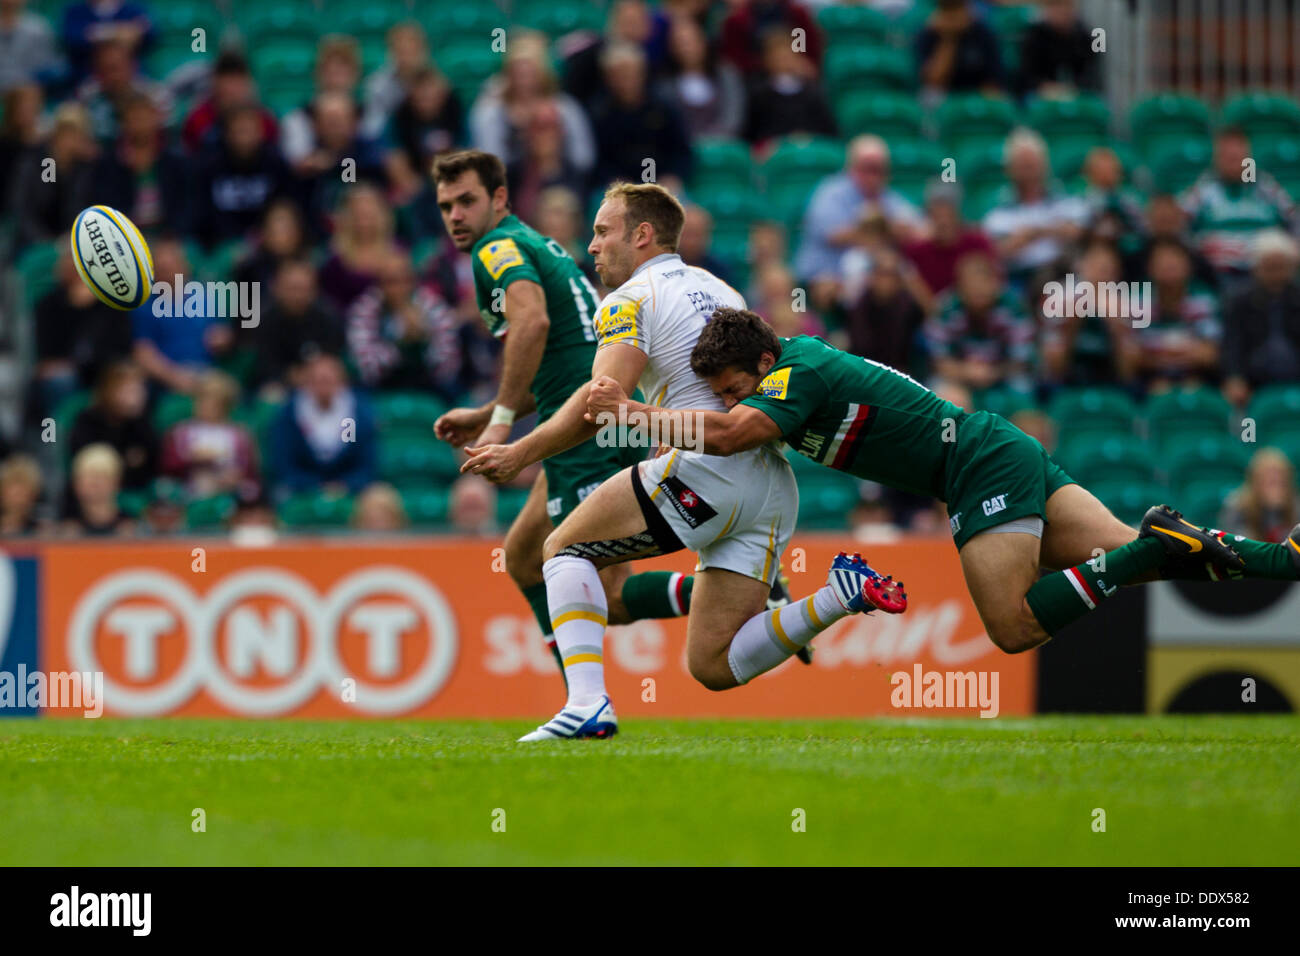 Leicester, Royaume-Uni. Sep 8, 2013. Leicester's Anthony Allen fait un battant s'attaquer. Action de la Aviva Premiership match entre Leicester Tigers et Worcester Warriors joué à Welford Road, Leicester Crédit : Graham Wilson/Alamy Live News Photo Stock